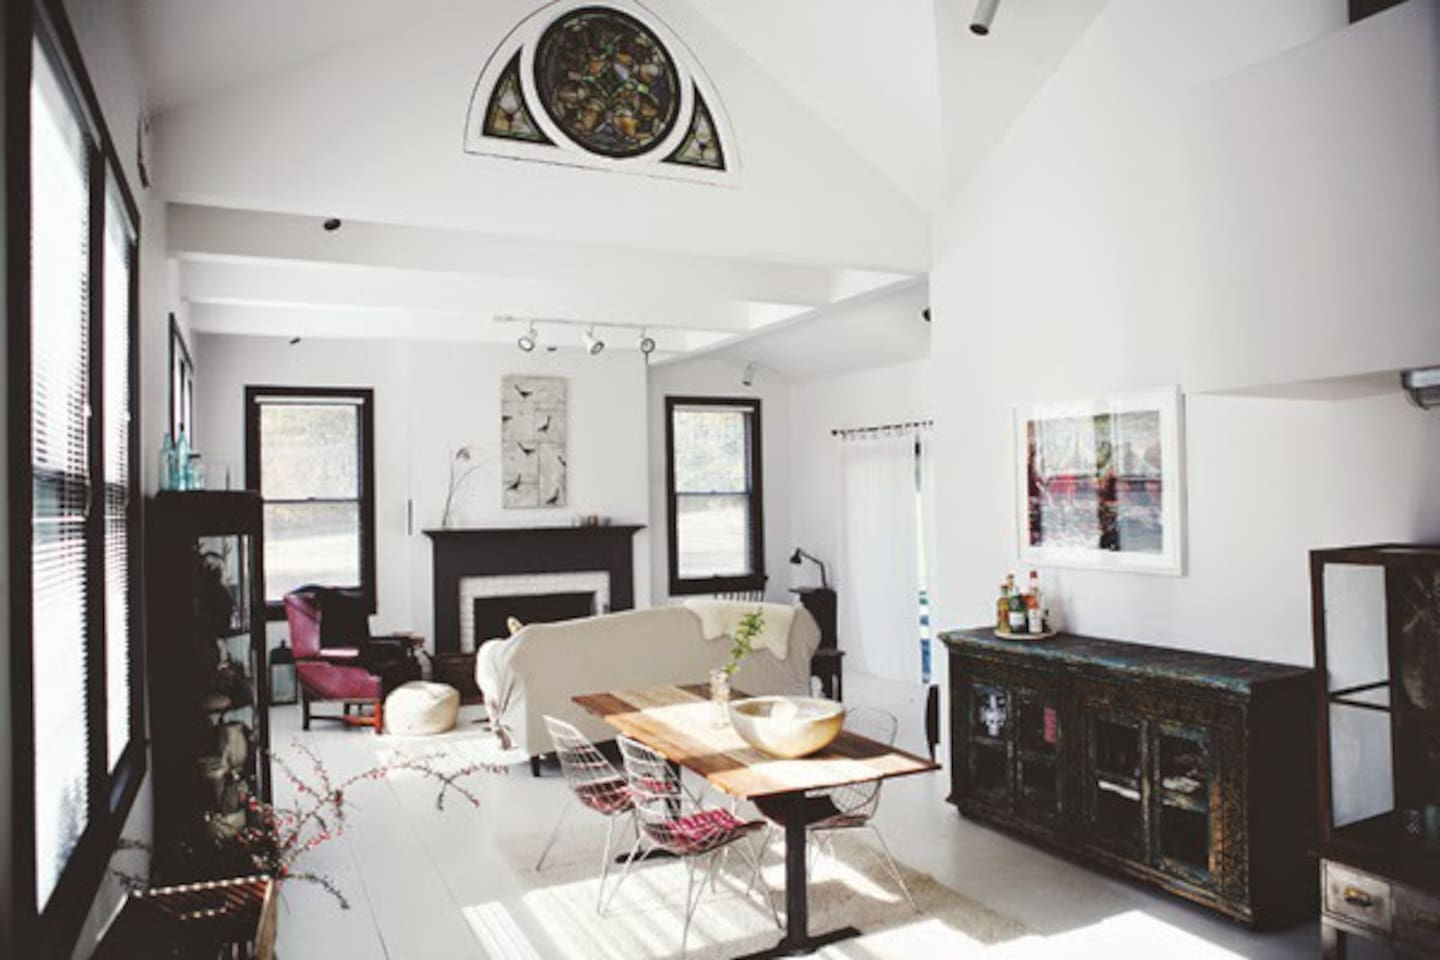 The bright and airy living/dining area